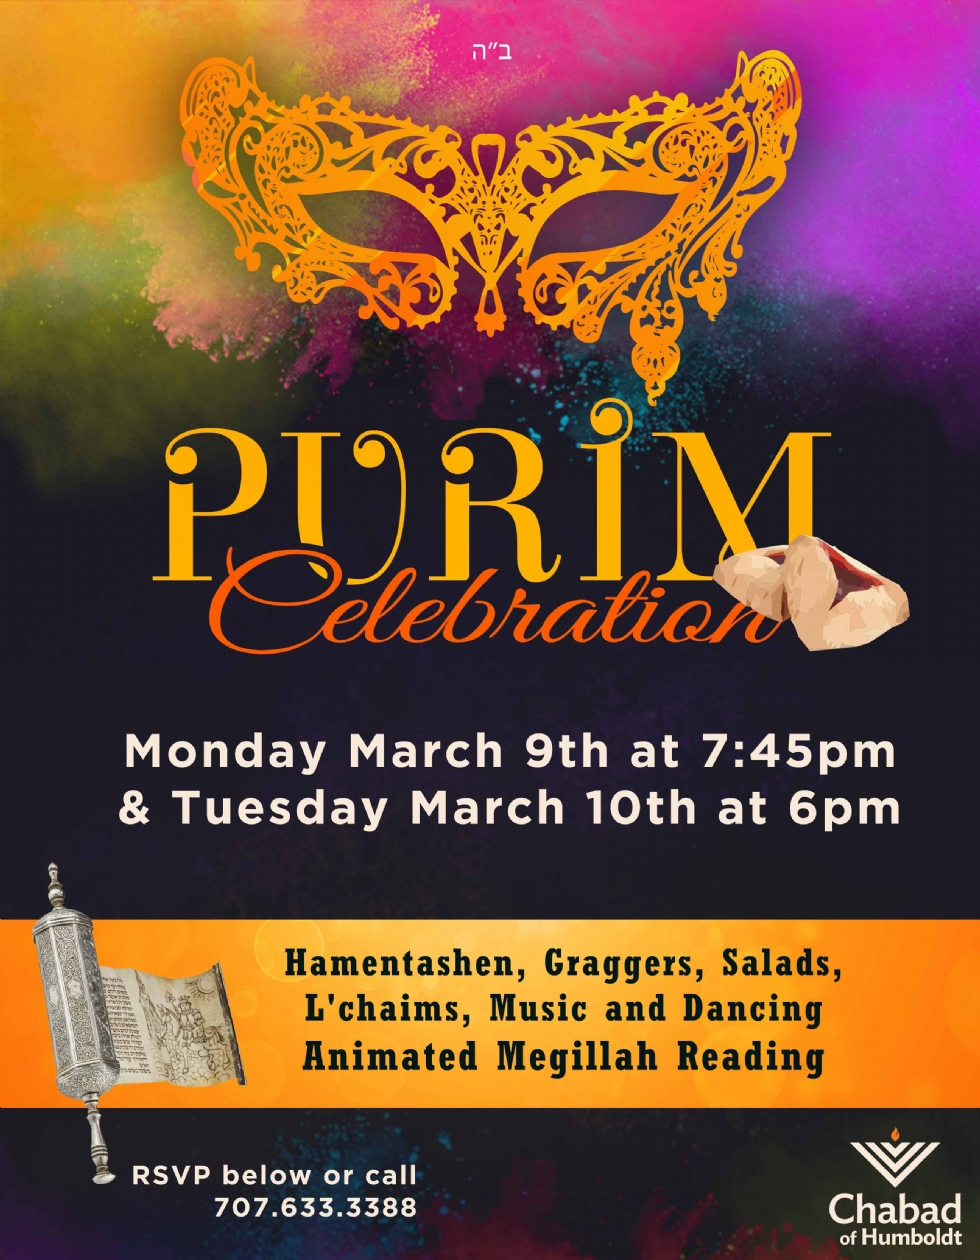 v2 Purim Celebration web.jpg